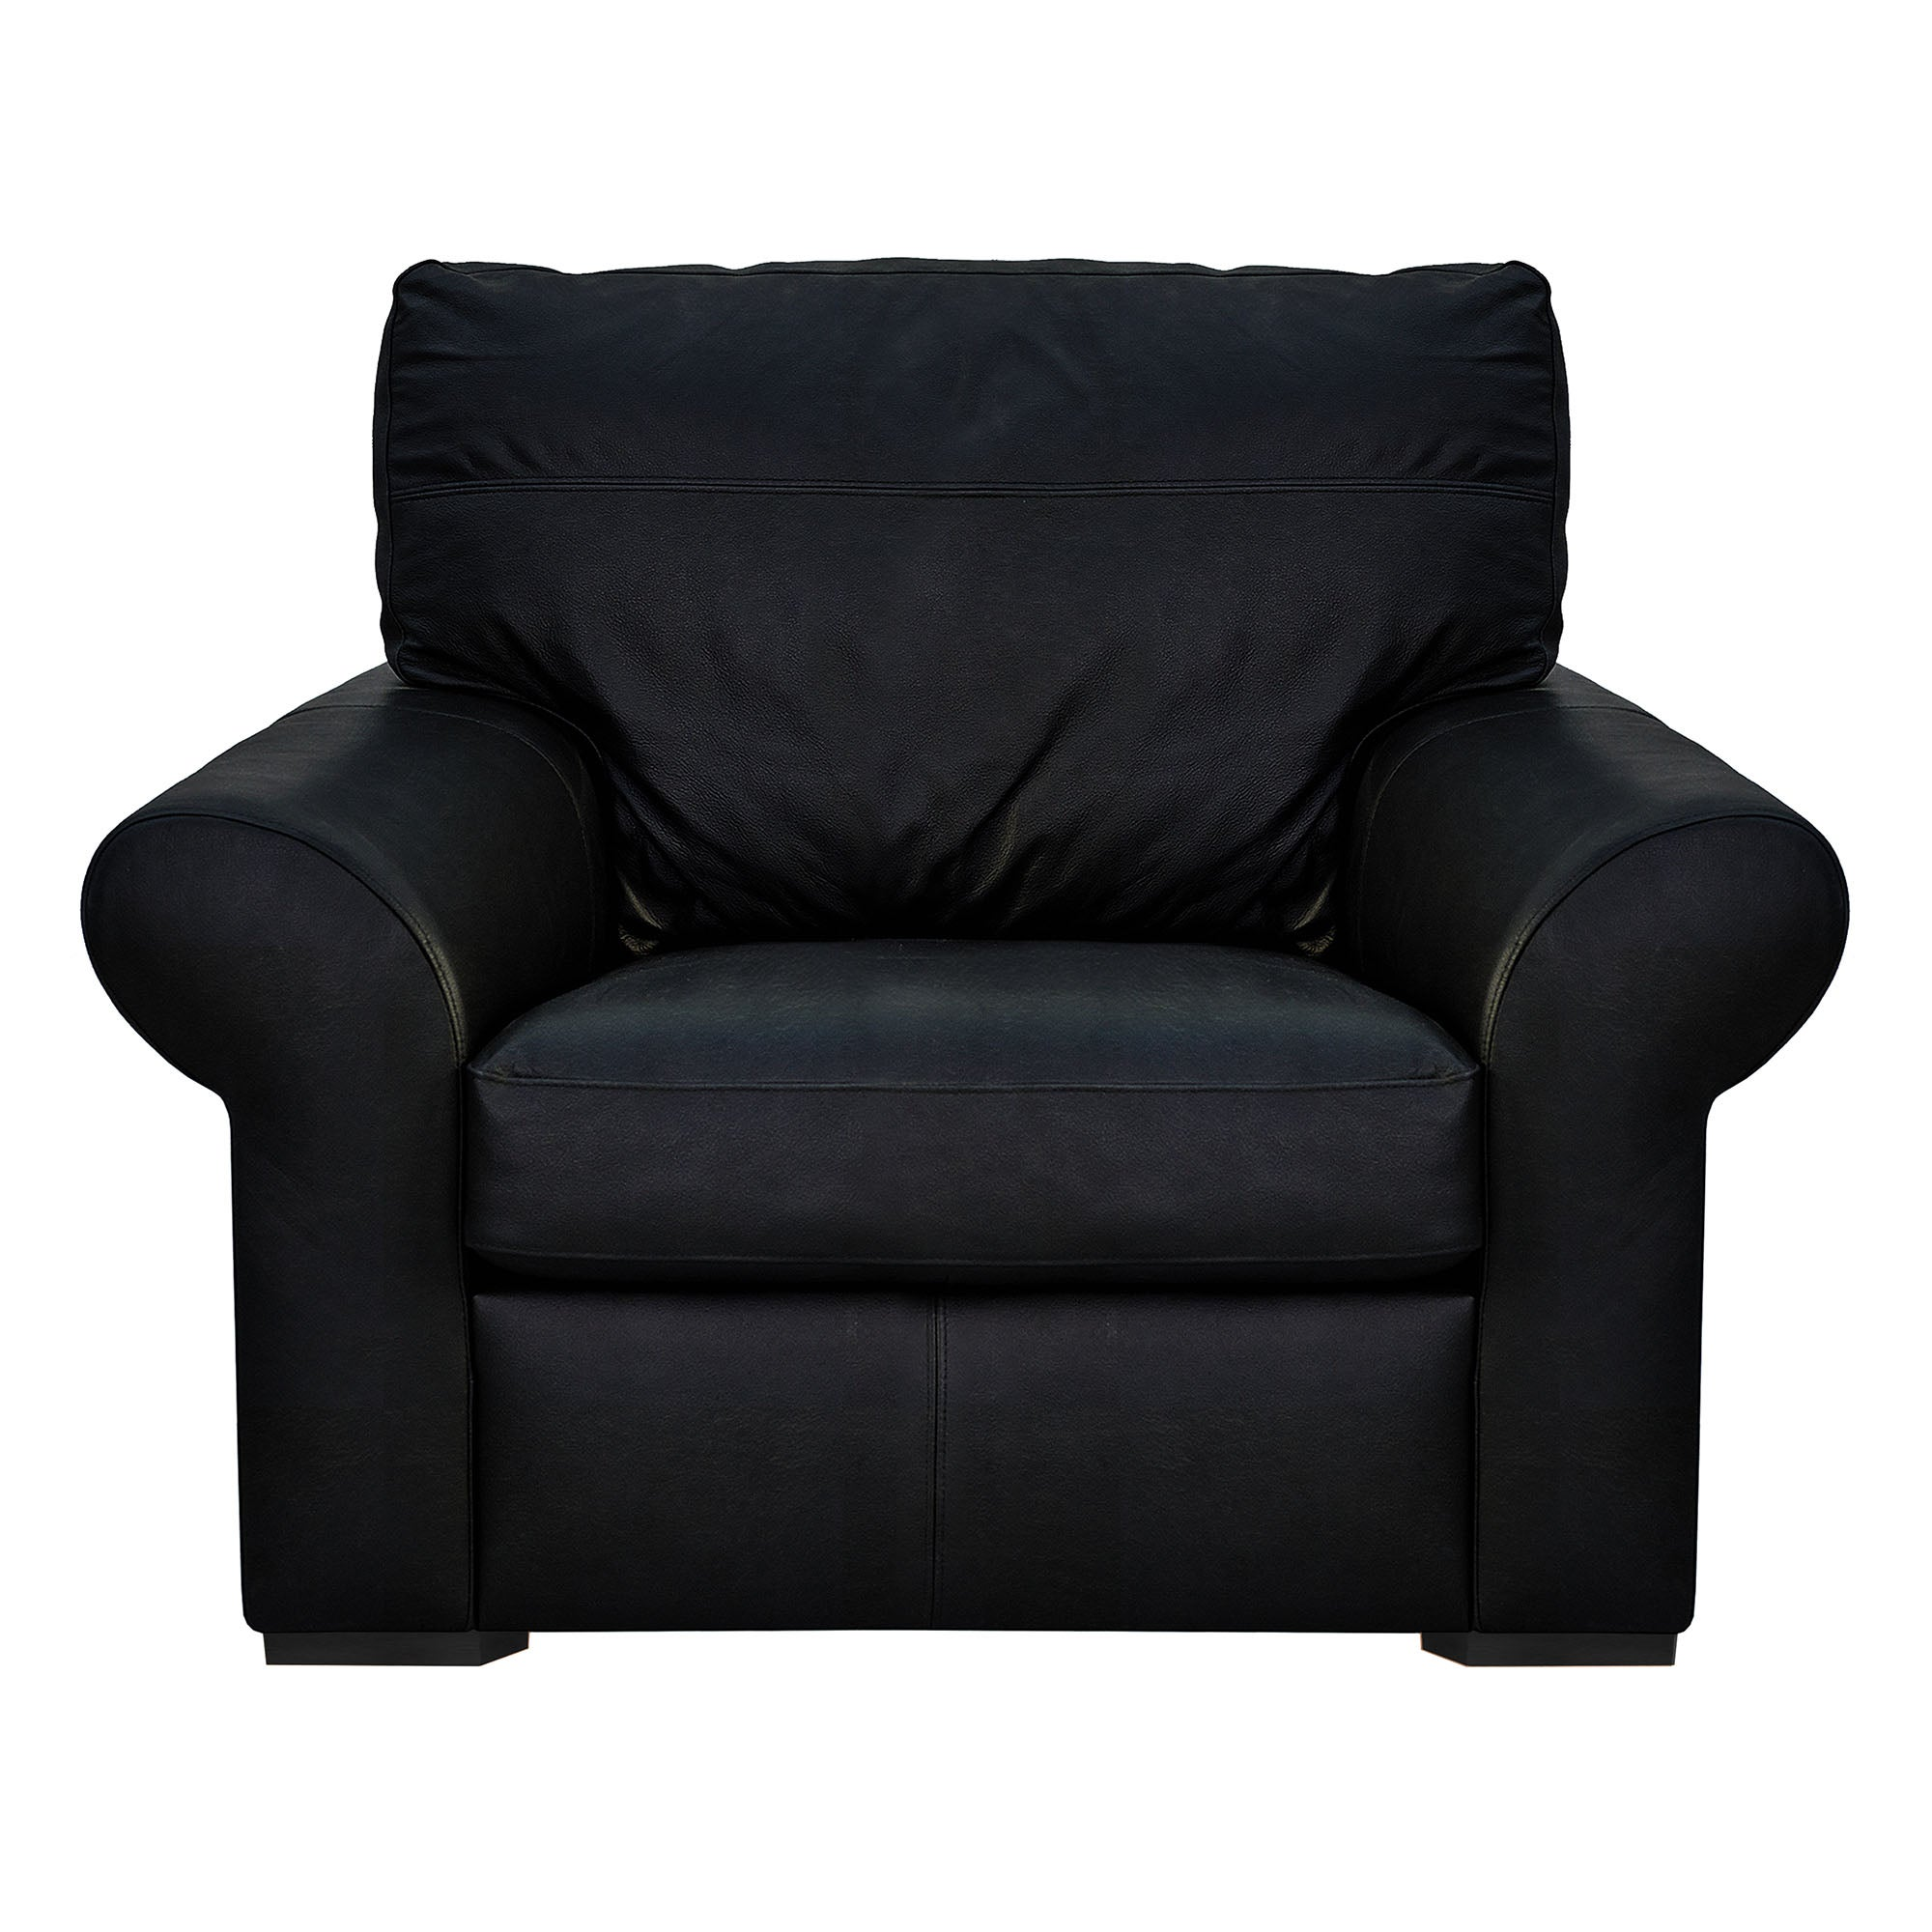 Finchley Collection Rimini Leather Armchair